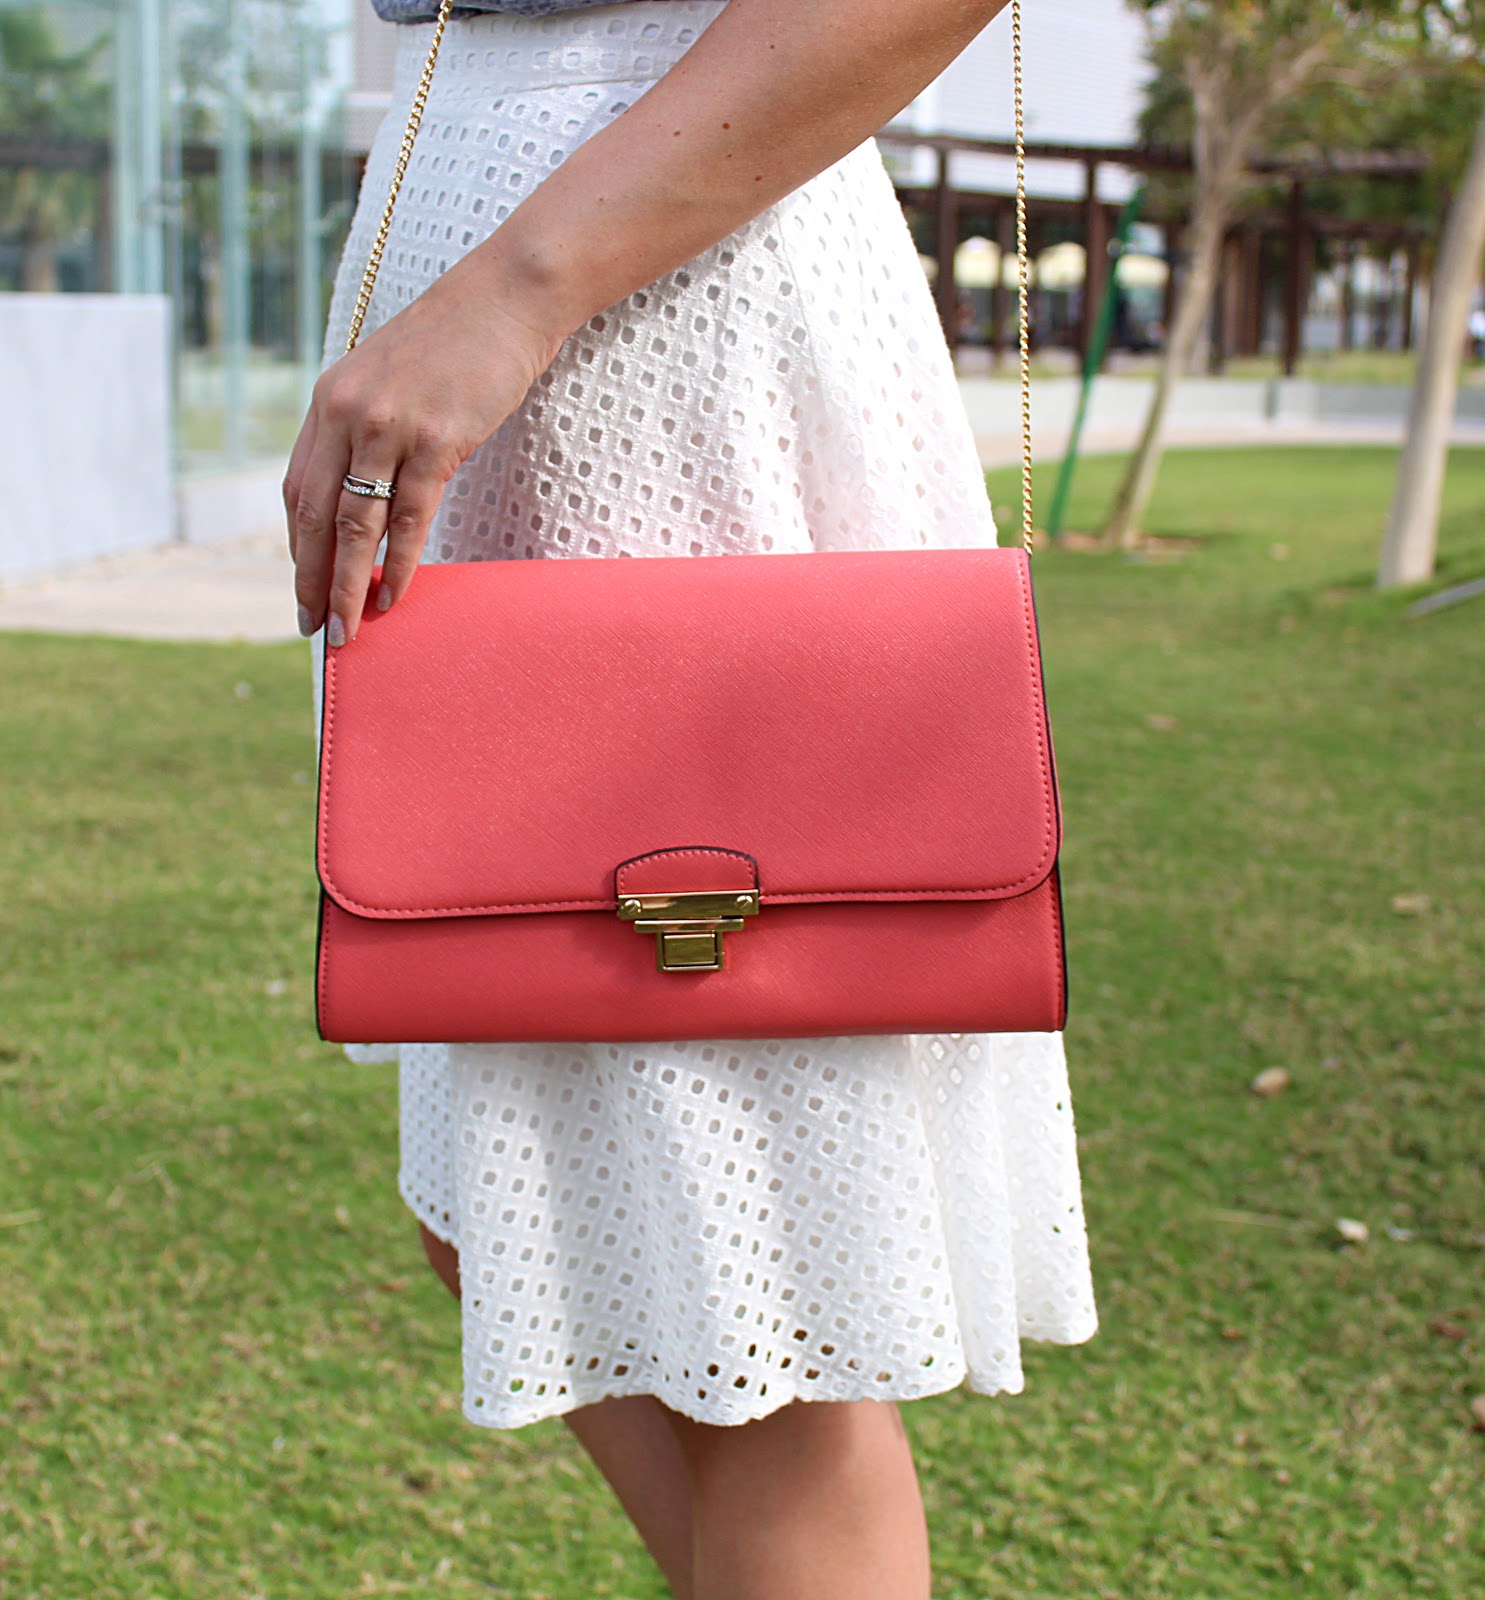 Life in Excess Blog - OOTD style